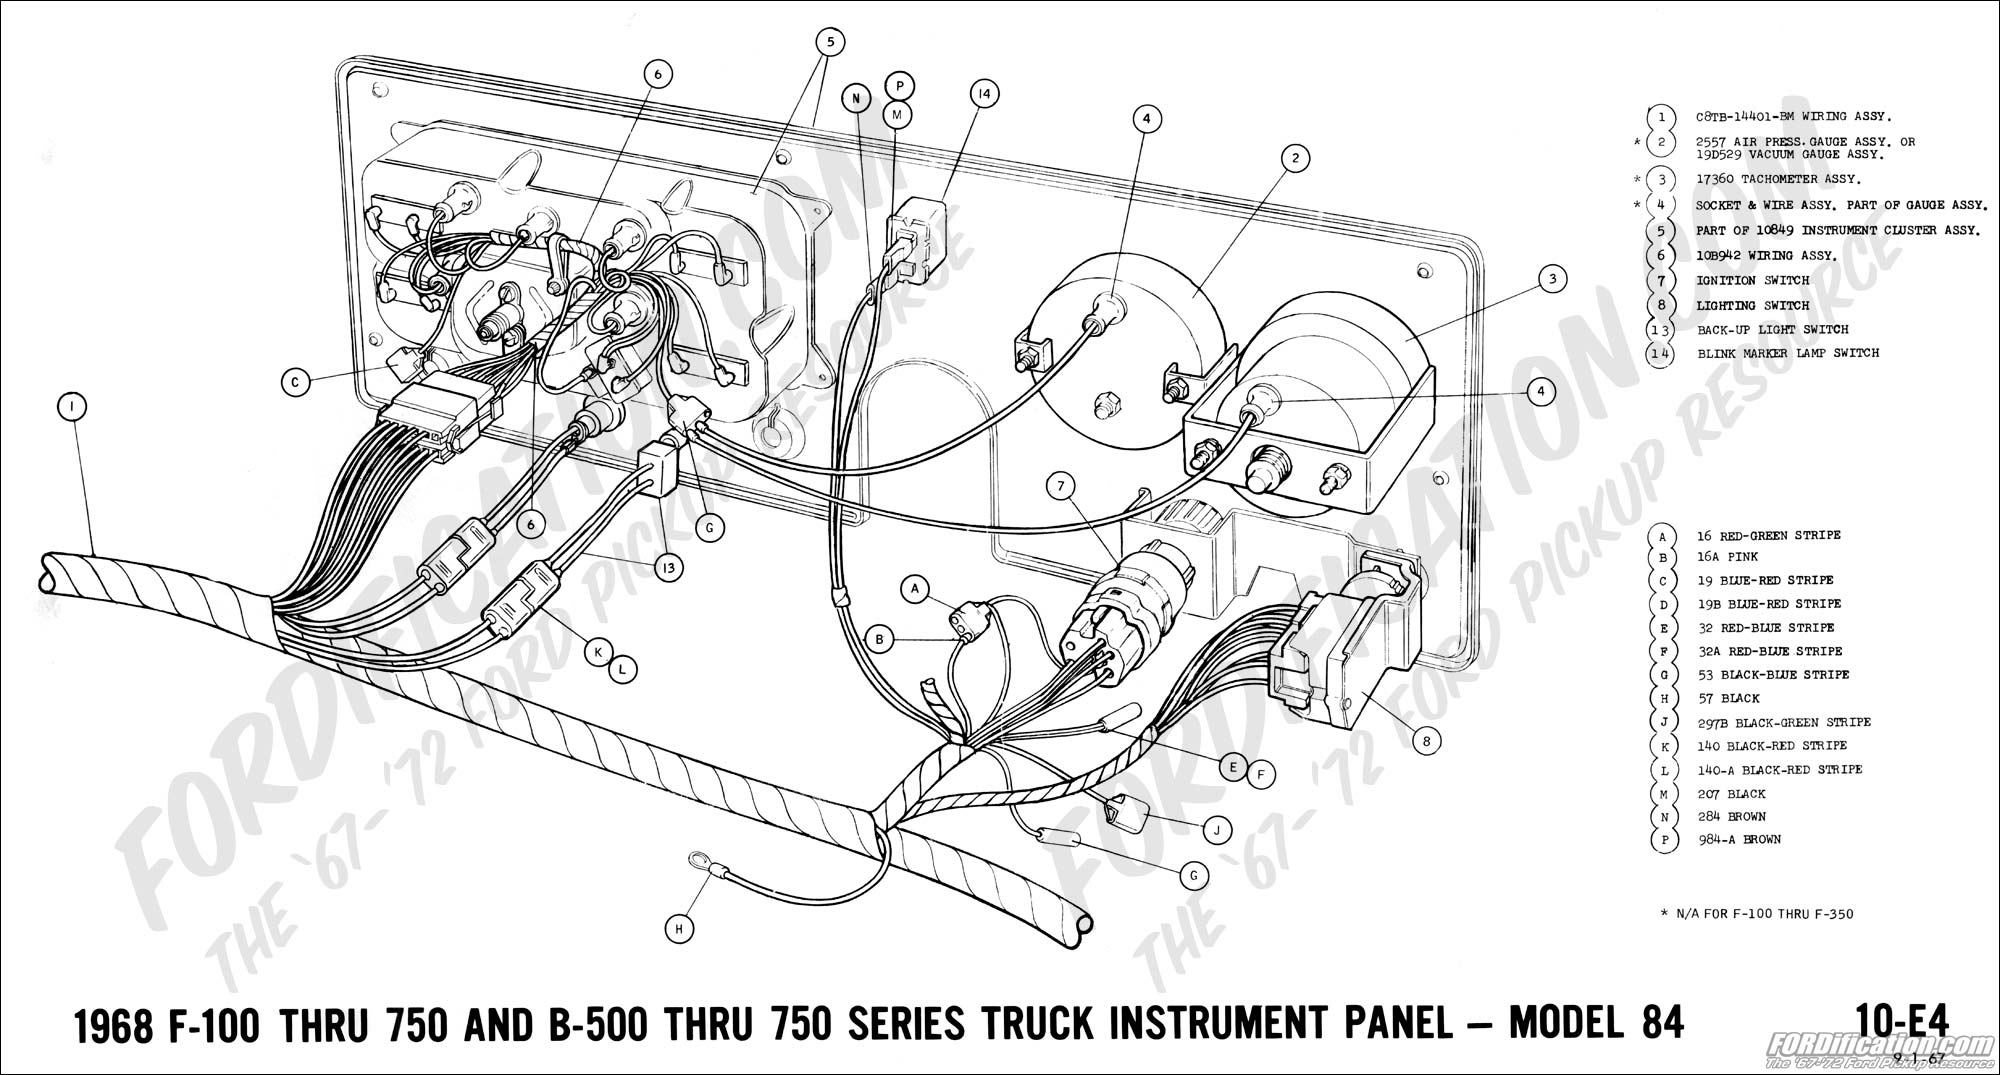 1965 corvette wiring diagram lighting with 156837 on Schematics i moreover Chevy Small Block Engine Diagram besides 156837 additionally 1966 Charging Circuit 1966 Mustang Wiring Diagram 1965 Mustang Wiring Diagram 1968 Mustang Wiring Diagram 1969 Mustang Wiring Diagram additionally Wiring diagrams.